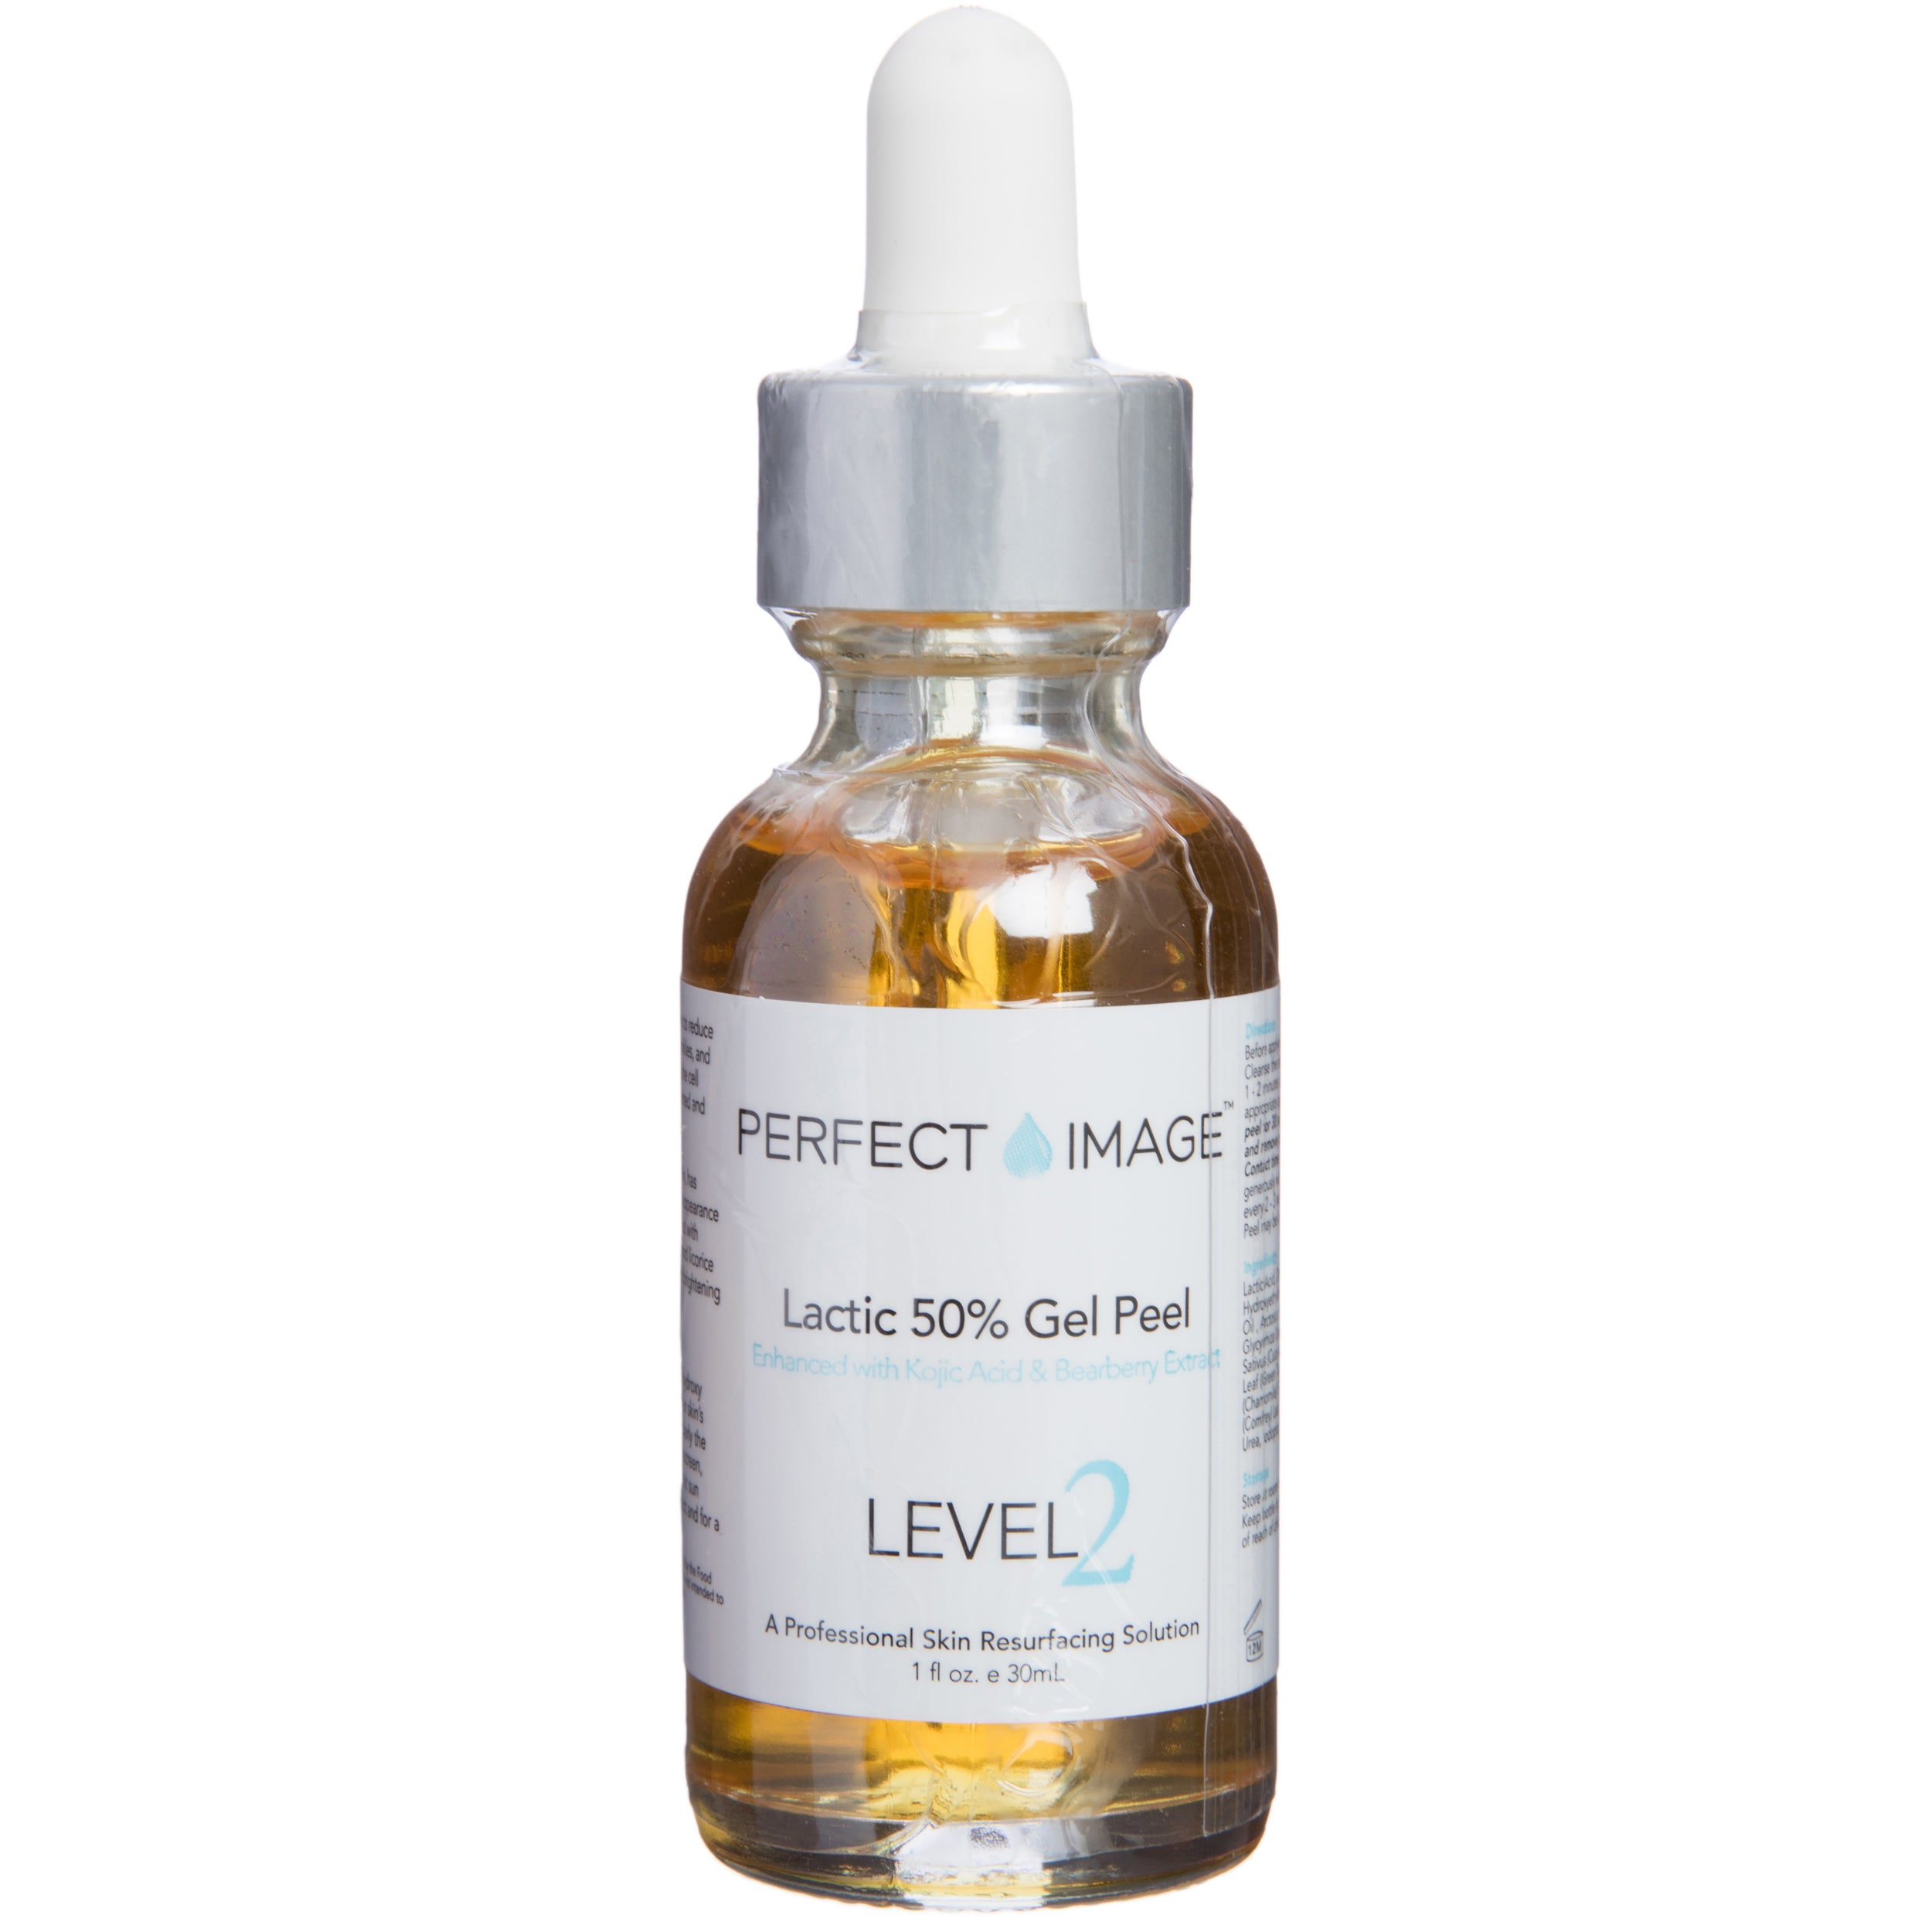 Top Product Reviews For Perfect Image Lactic Acid Gel Peel With